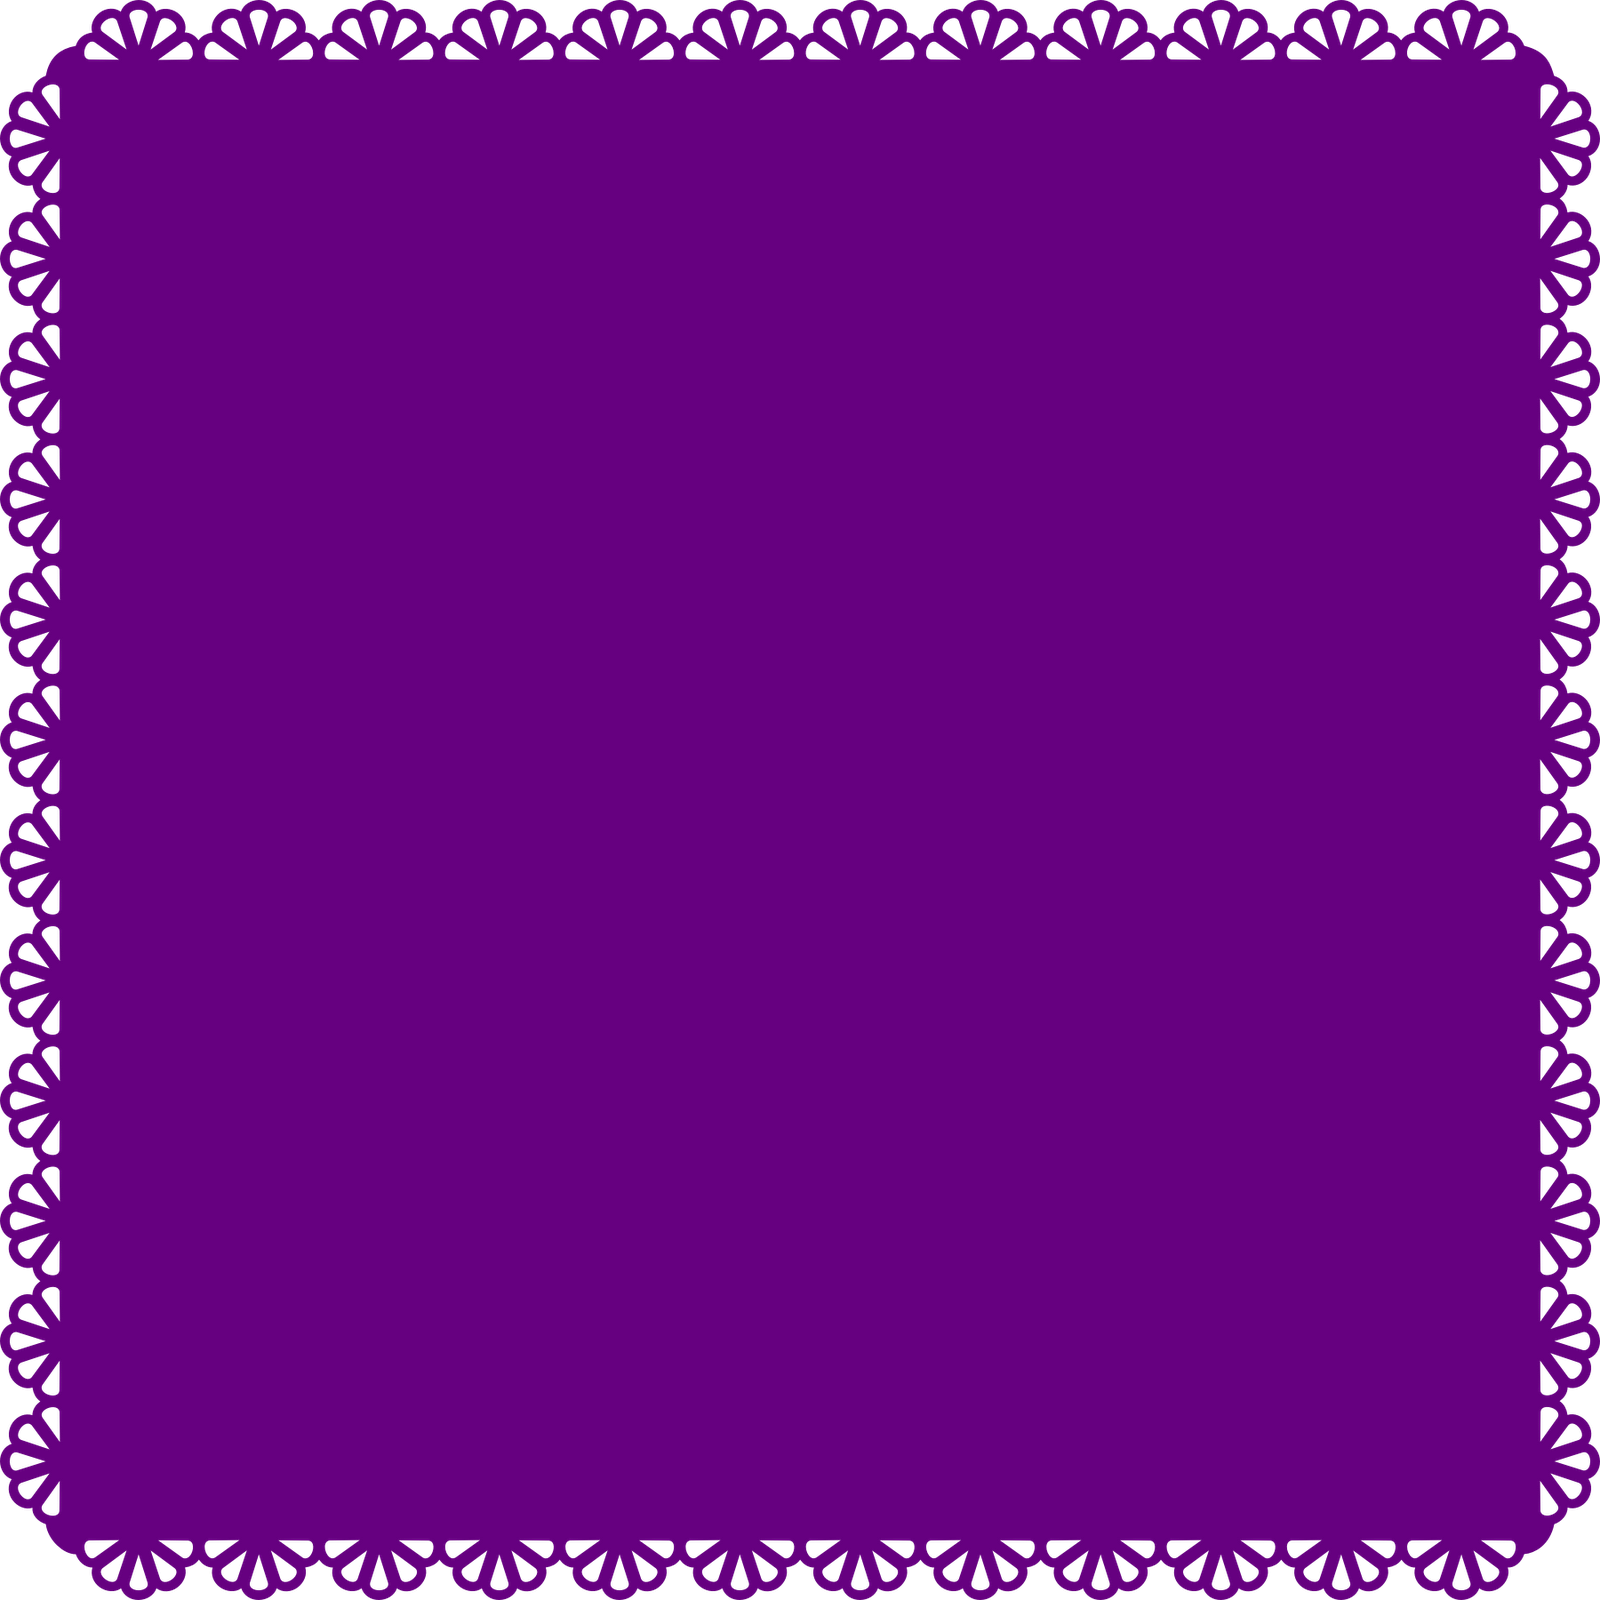 If you would like to design your own borders and mats the instructions are here i would love to see photo s if you use any of these designs in a project